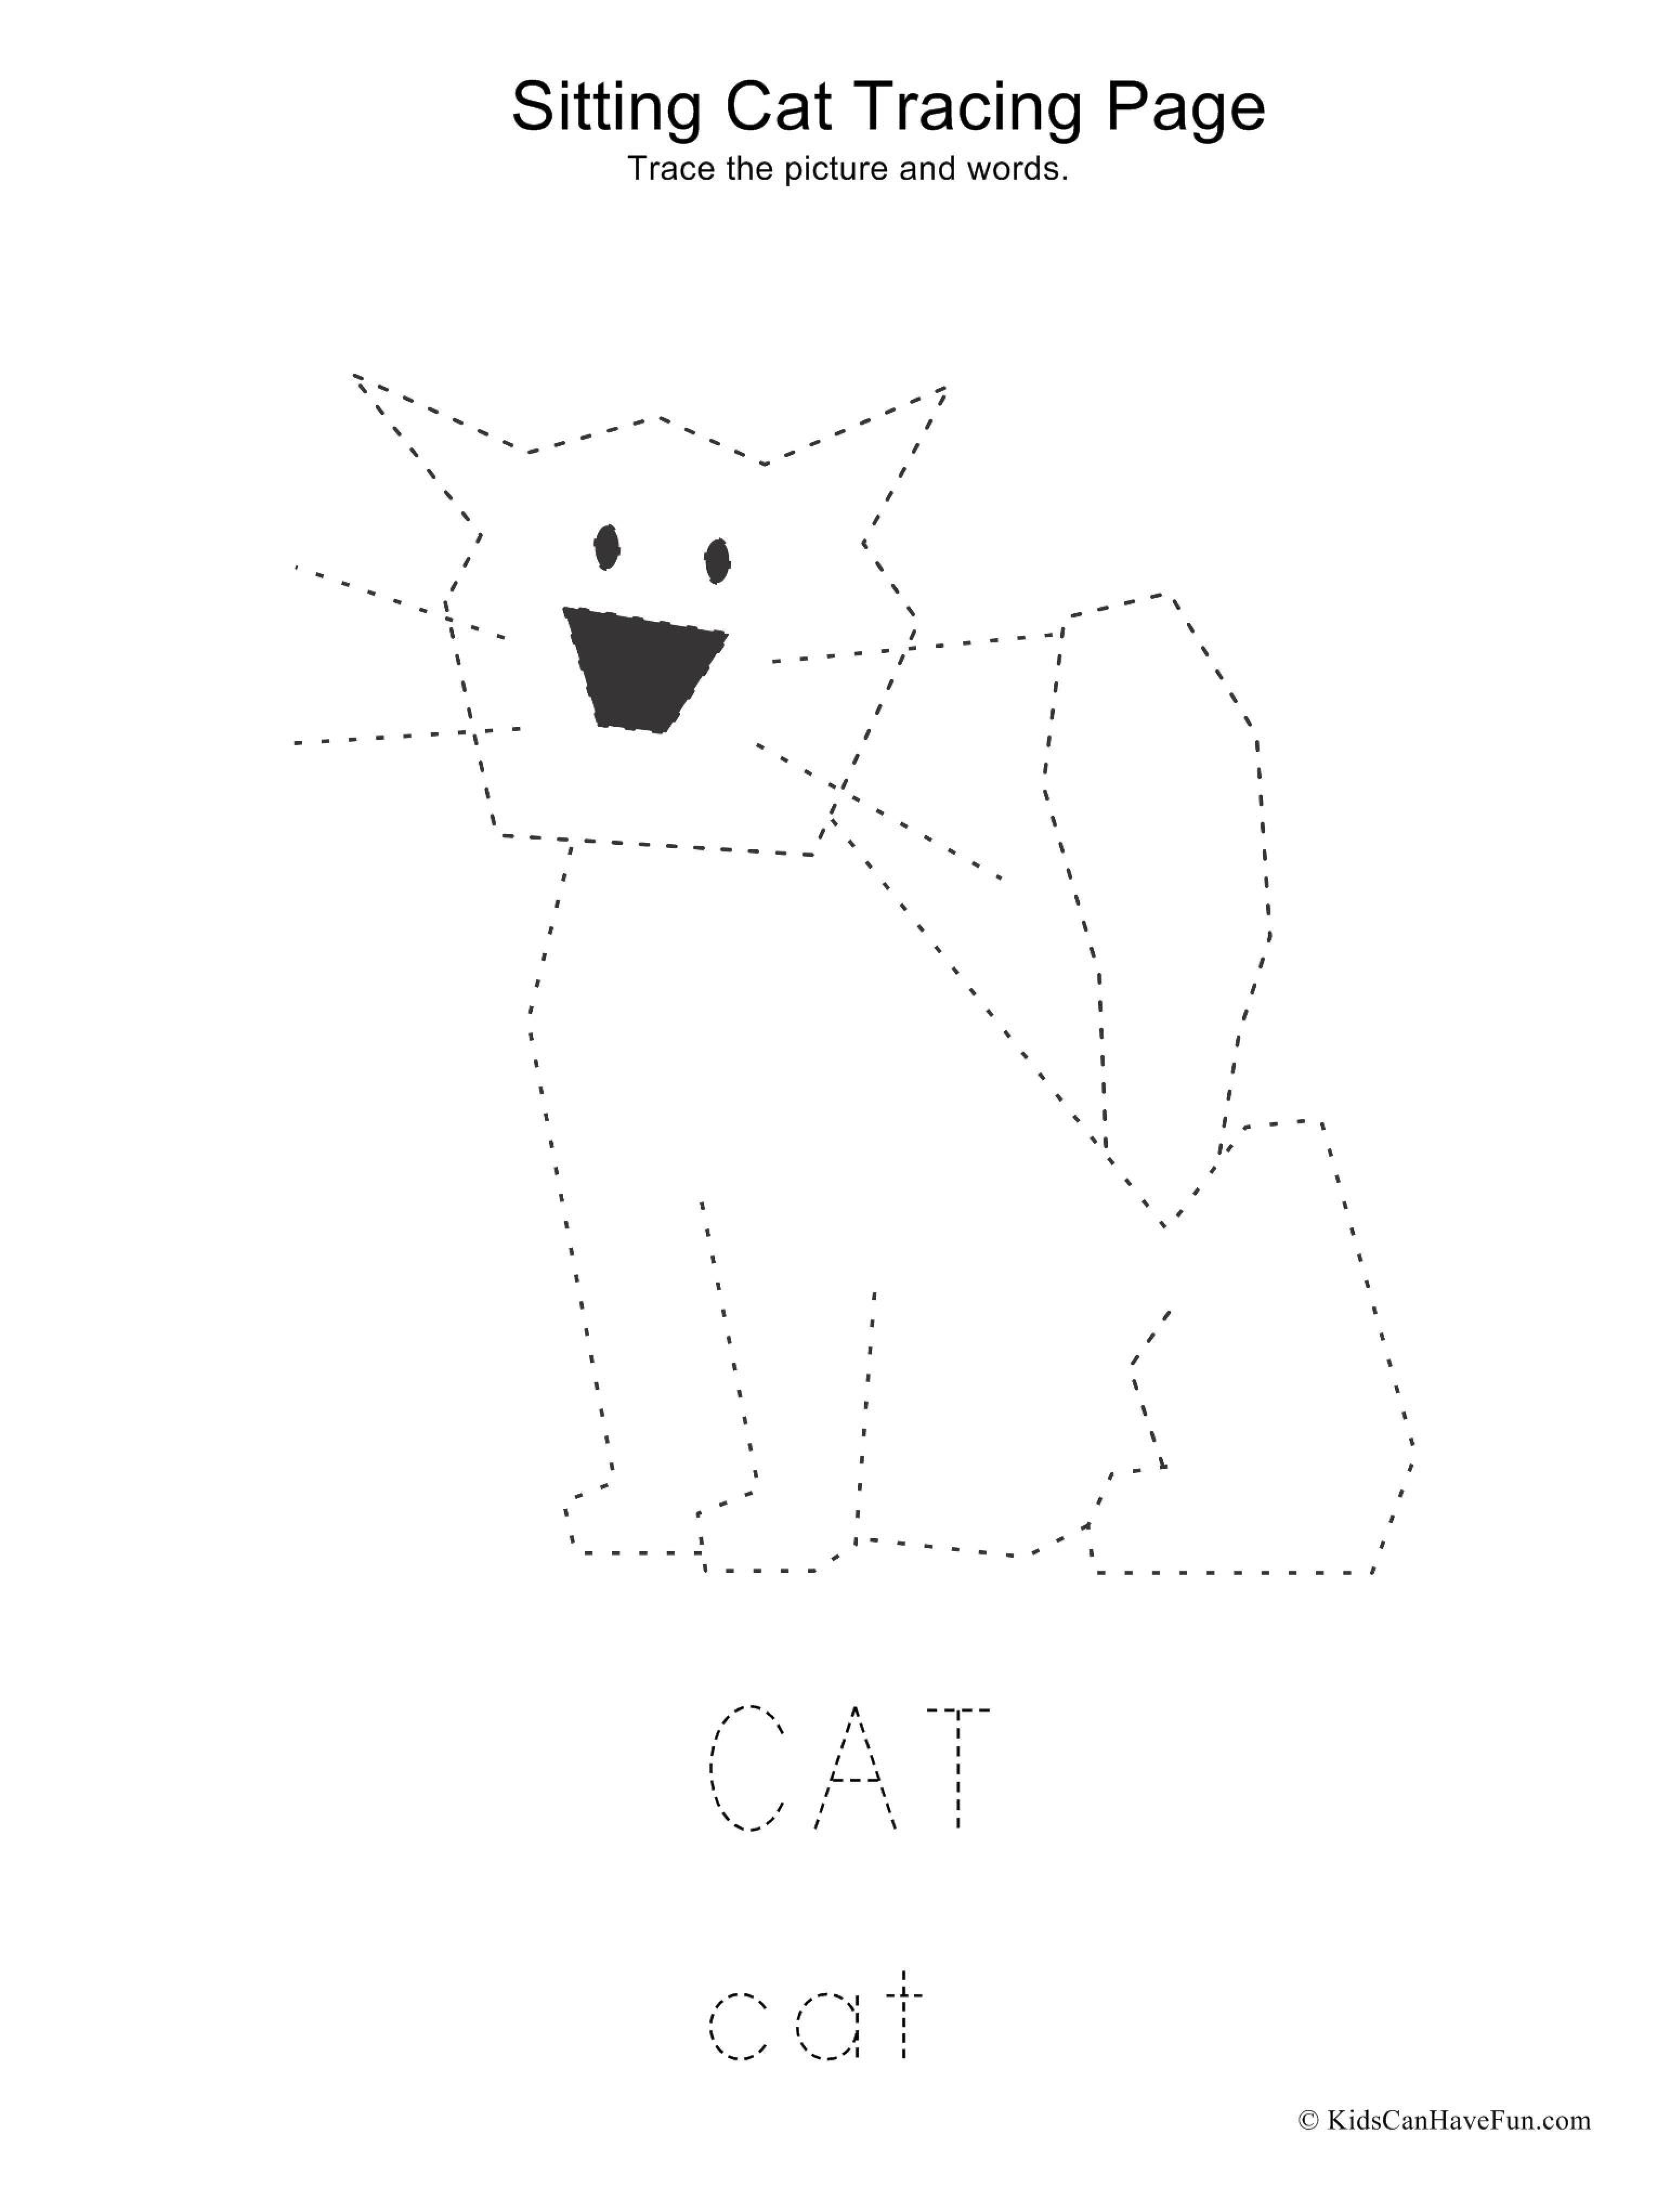 Cat Sitting Tracing Page In